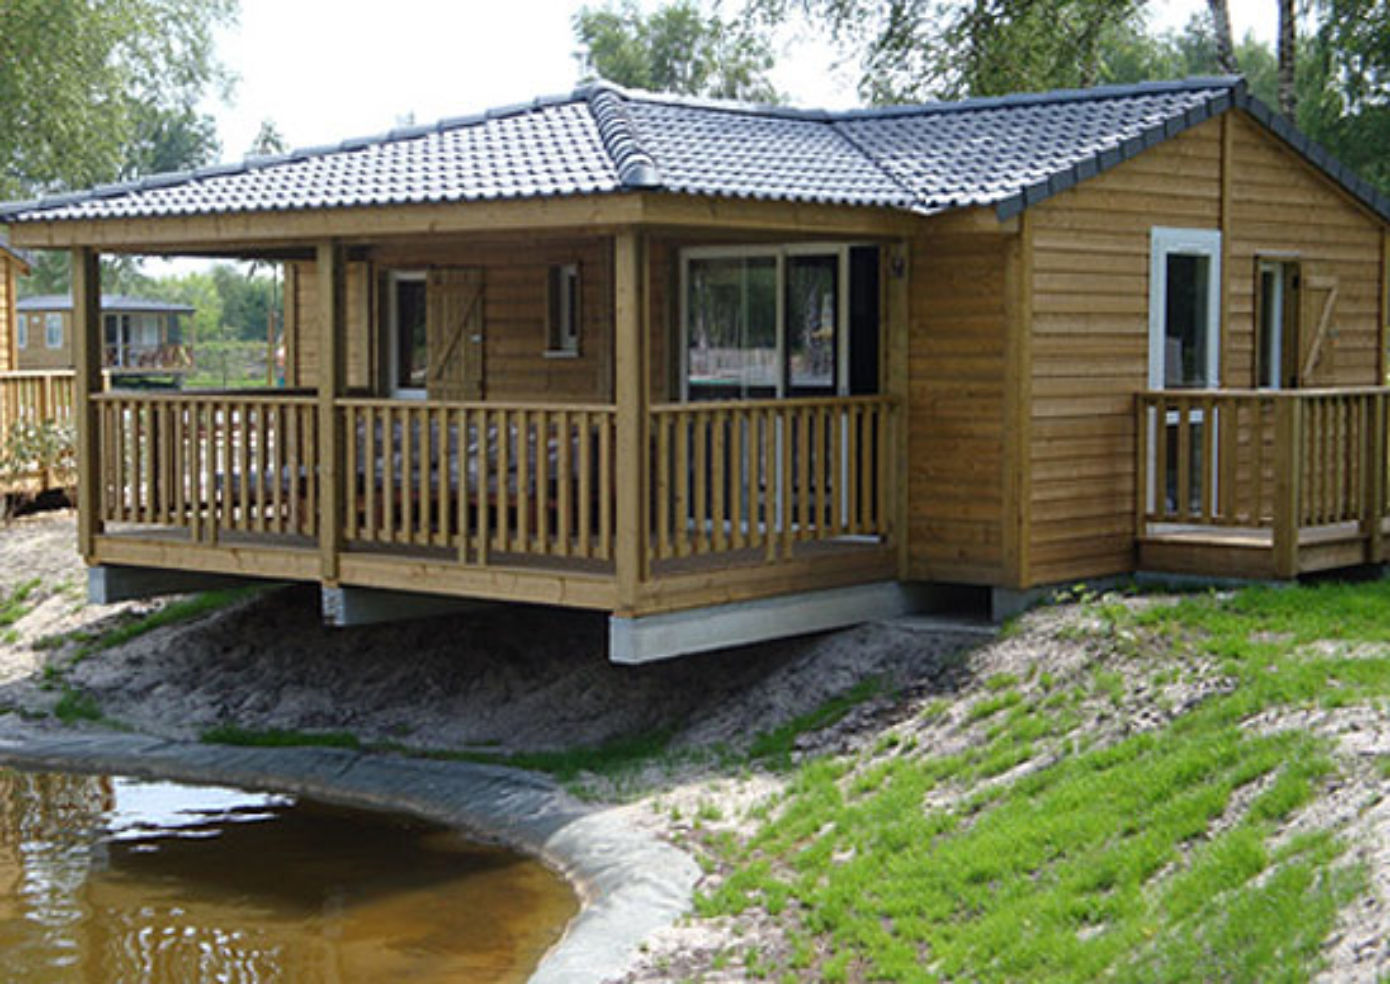 The Chalet Prestige at Camping de Bordeaux Lac in France